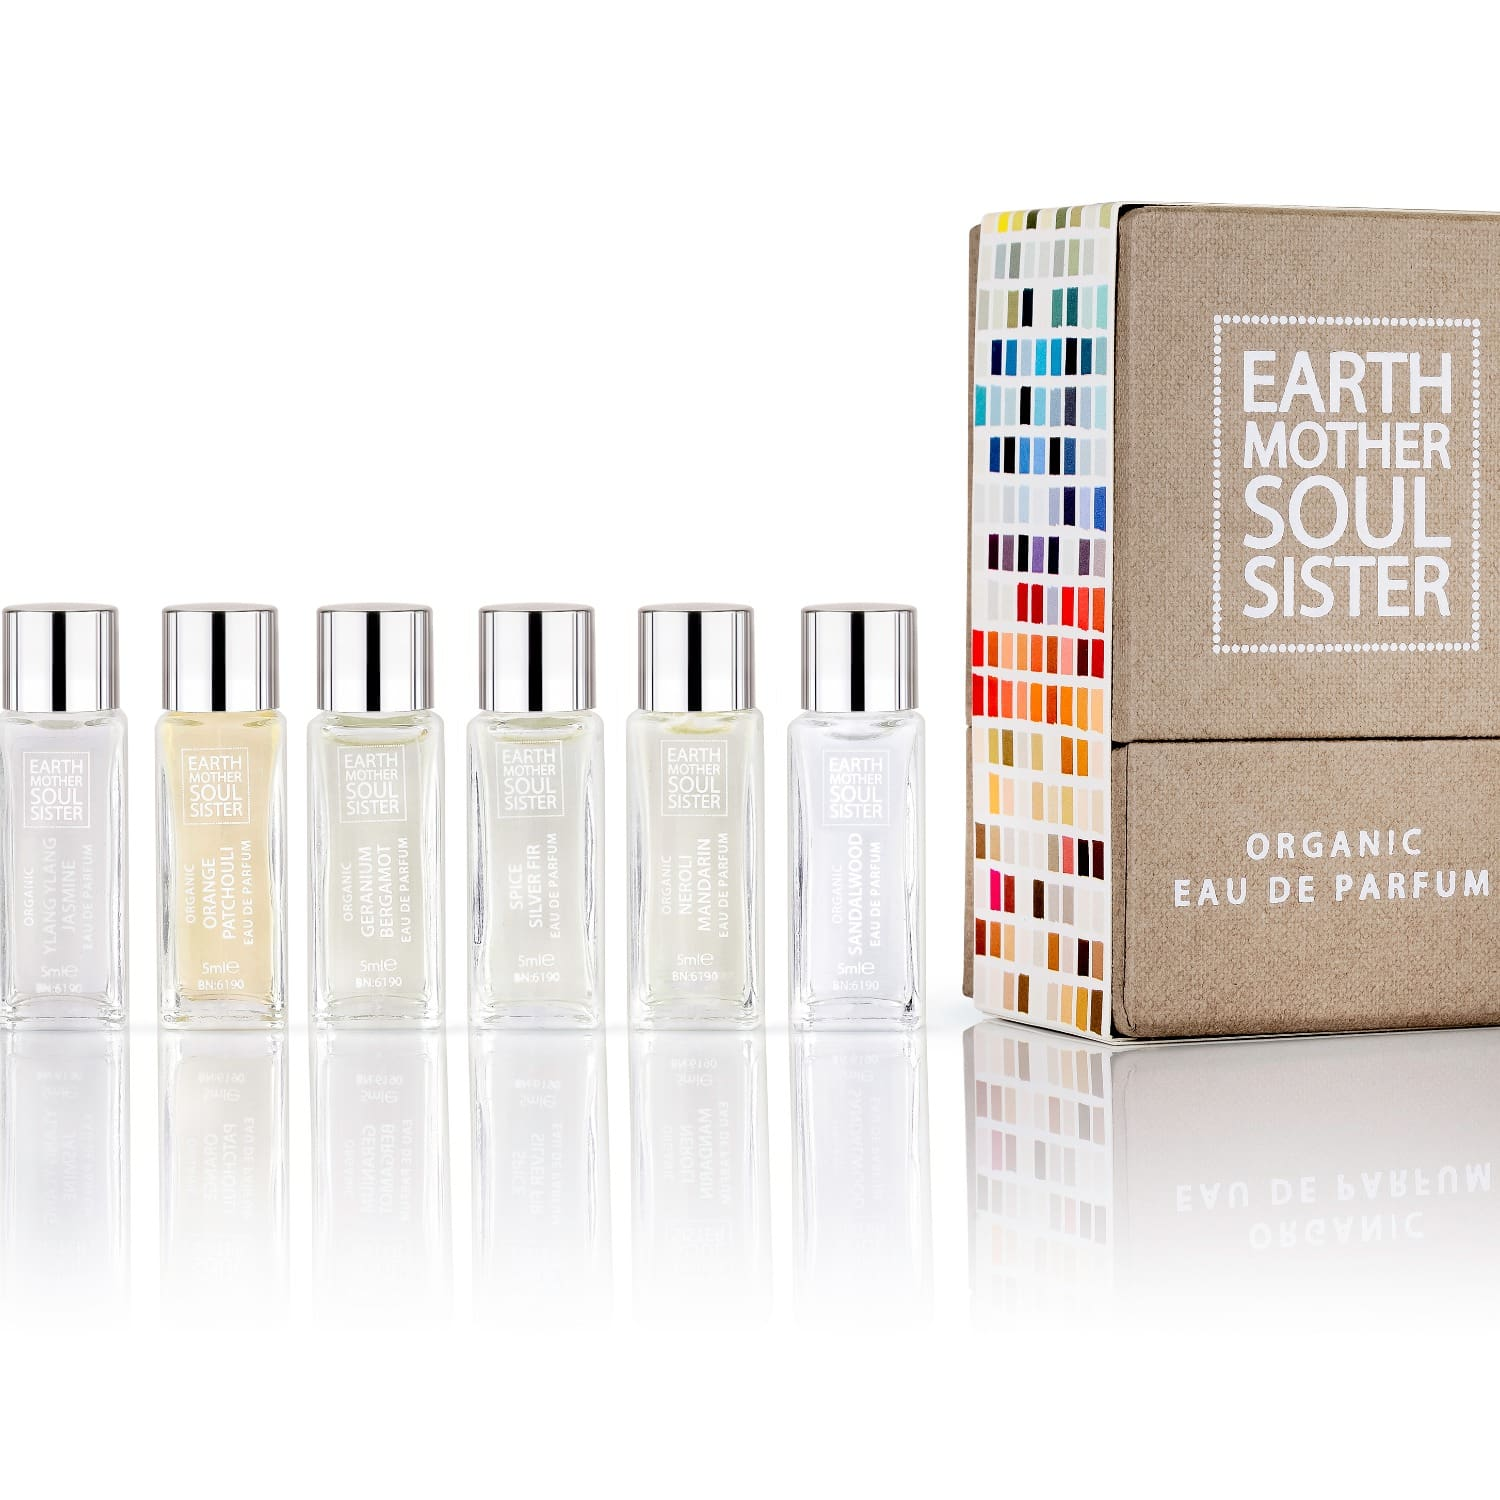 Organic Perfume Collection Box 2 by EARTH MOTHER SOUL SISTER